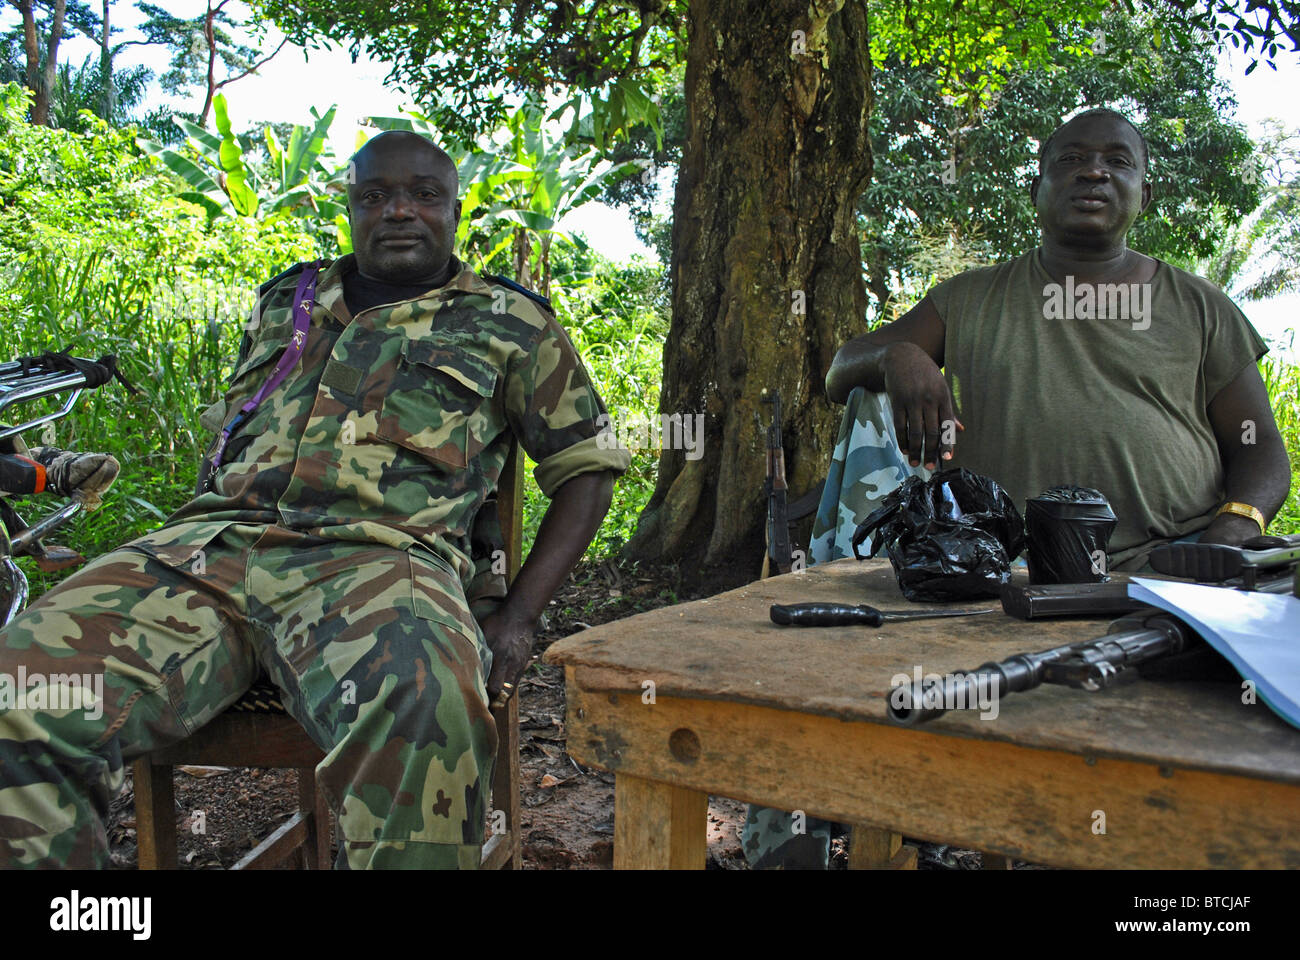 Military roadblock in Guiglo, Ivory Coast, West Africa - Stock Image